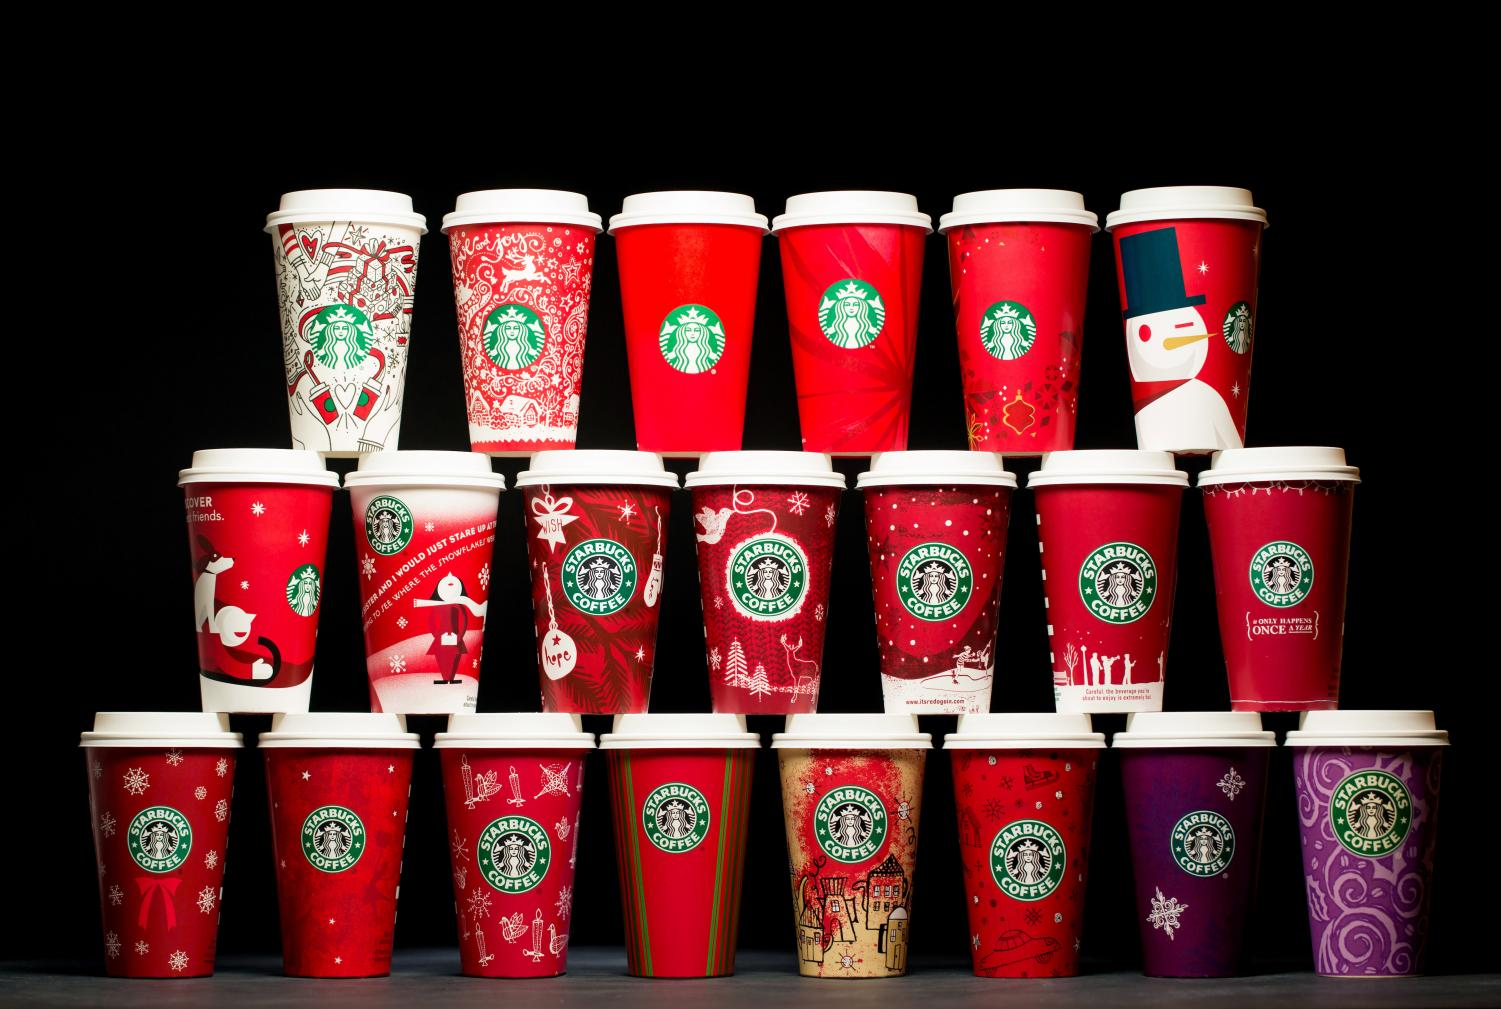 The cup designs starting from 1997 [bottom row right side] to 2017 [top row left side]. The different designs changes can be noticed as the designs decrease the amount of Christmas spirit included. Photo from Starbucks Newsroom. Reprinted with permission.